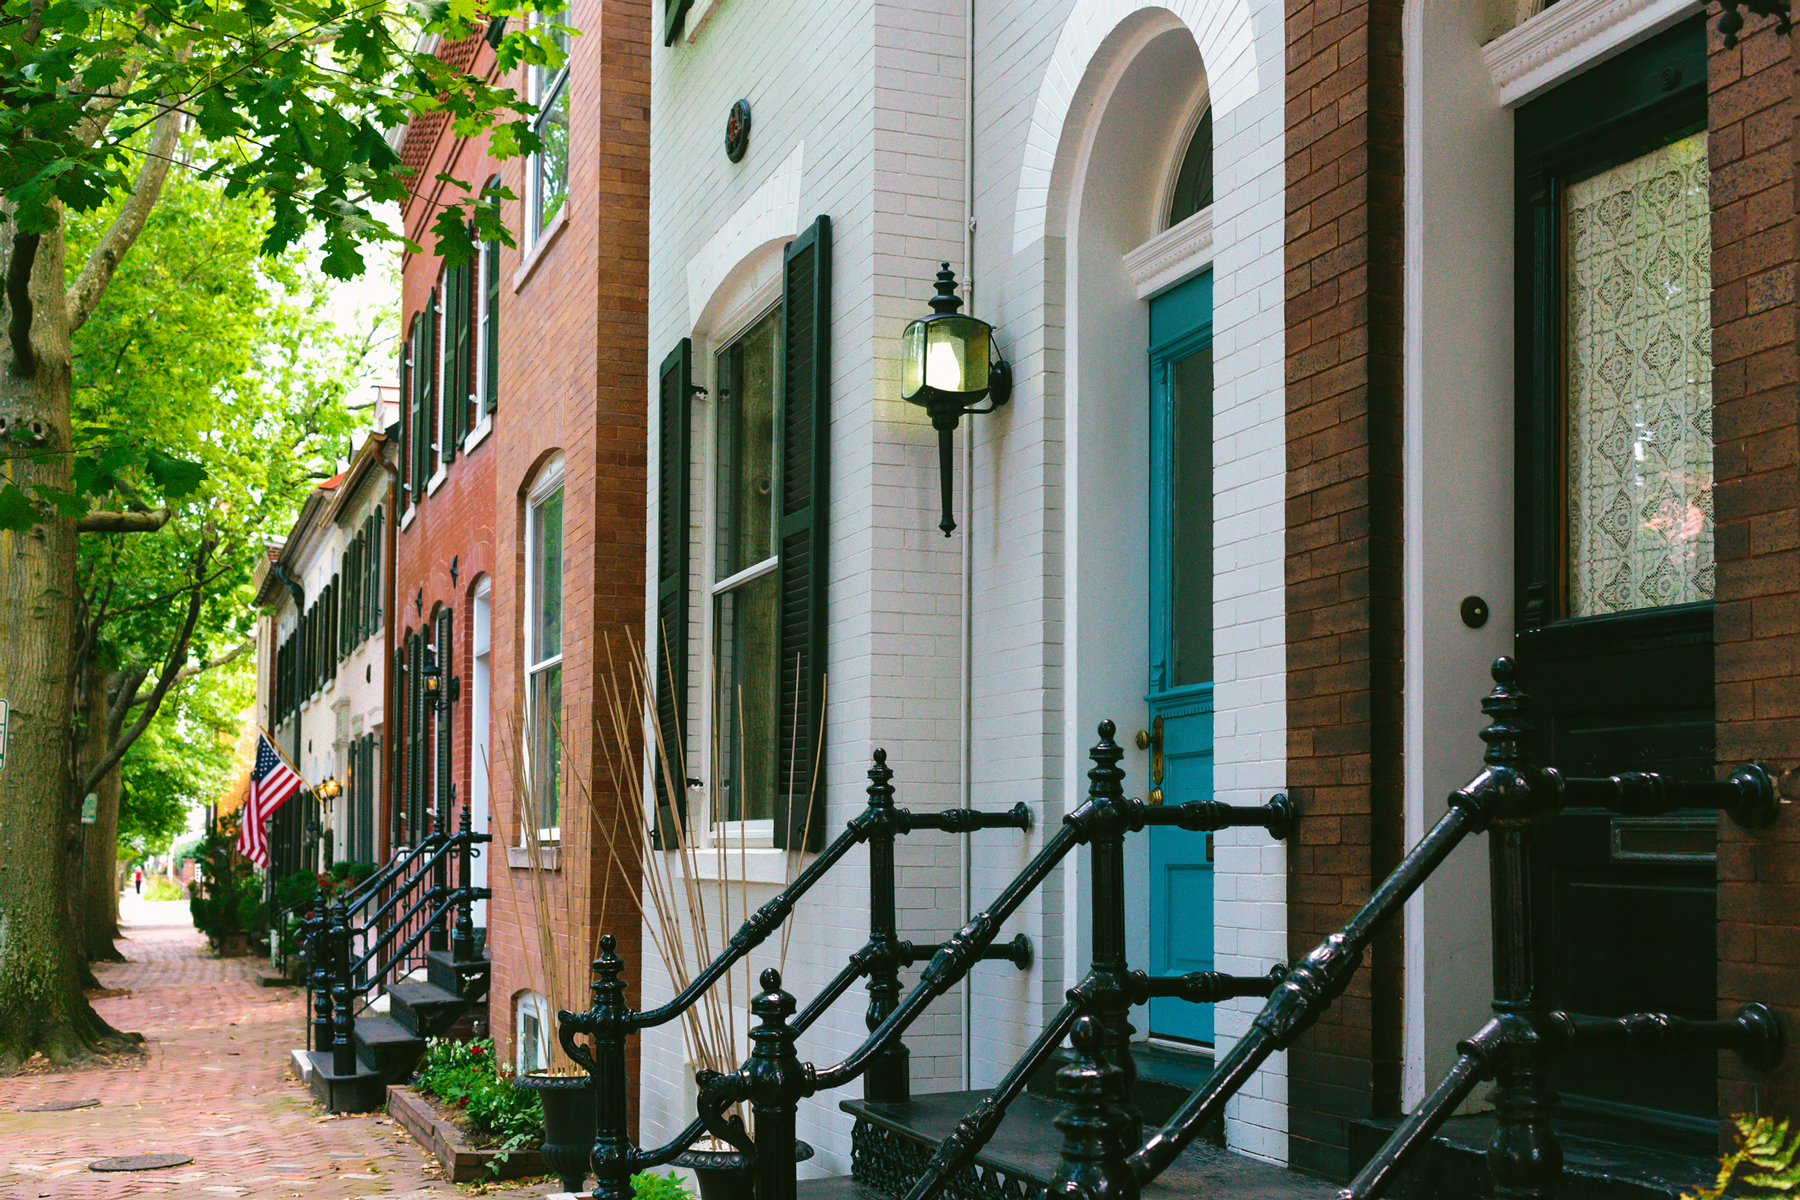 Row of Townhomes in Historic District of Alexandria, Virginia